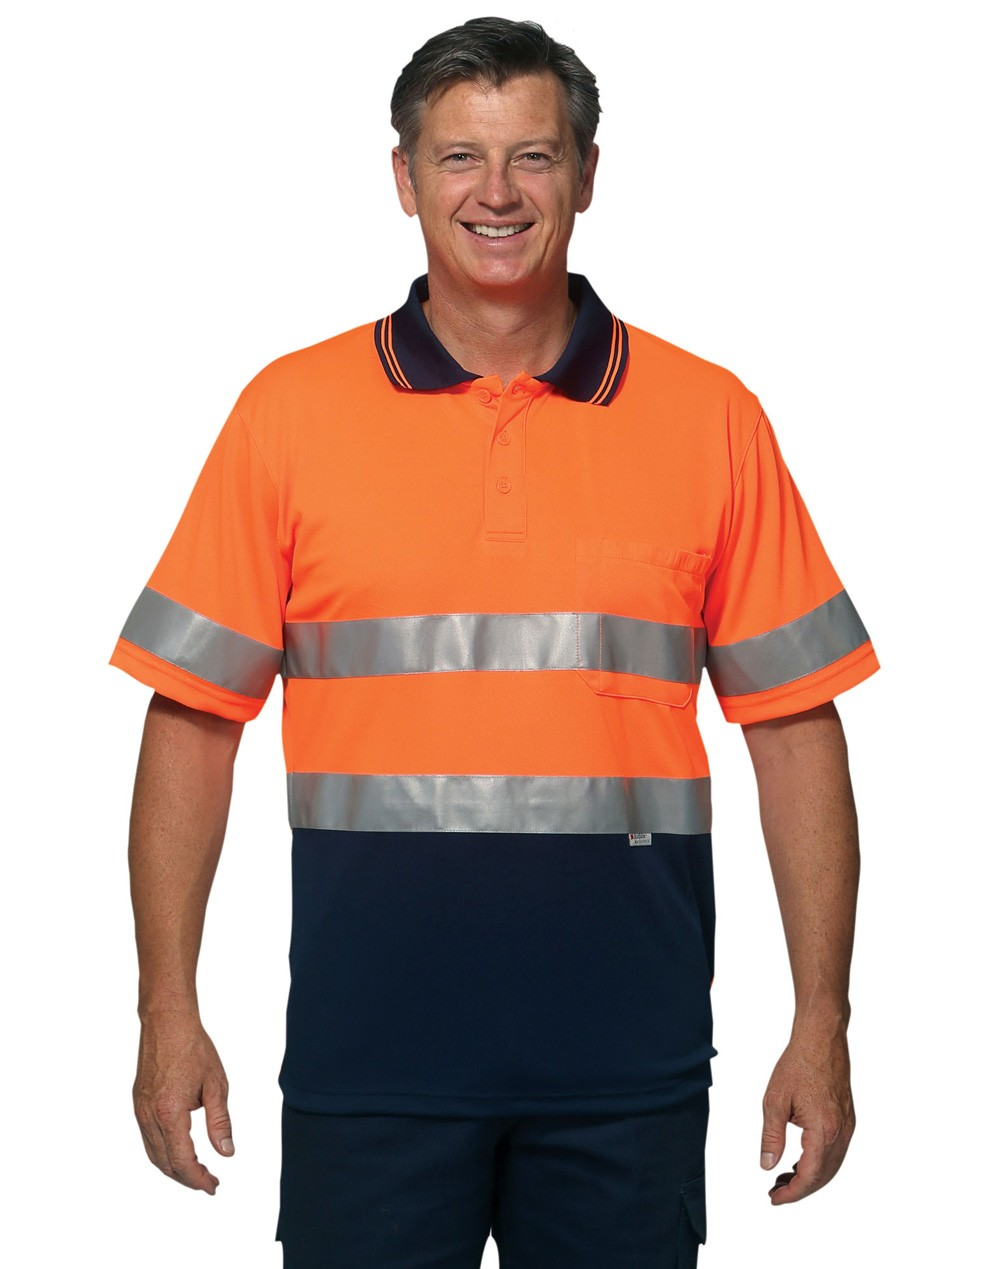 Winning Spirit High Visibility Short Sleeve Safety Polo 3M Reflective Tapes